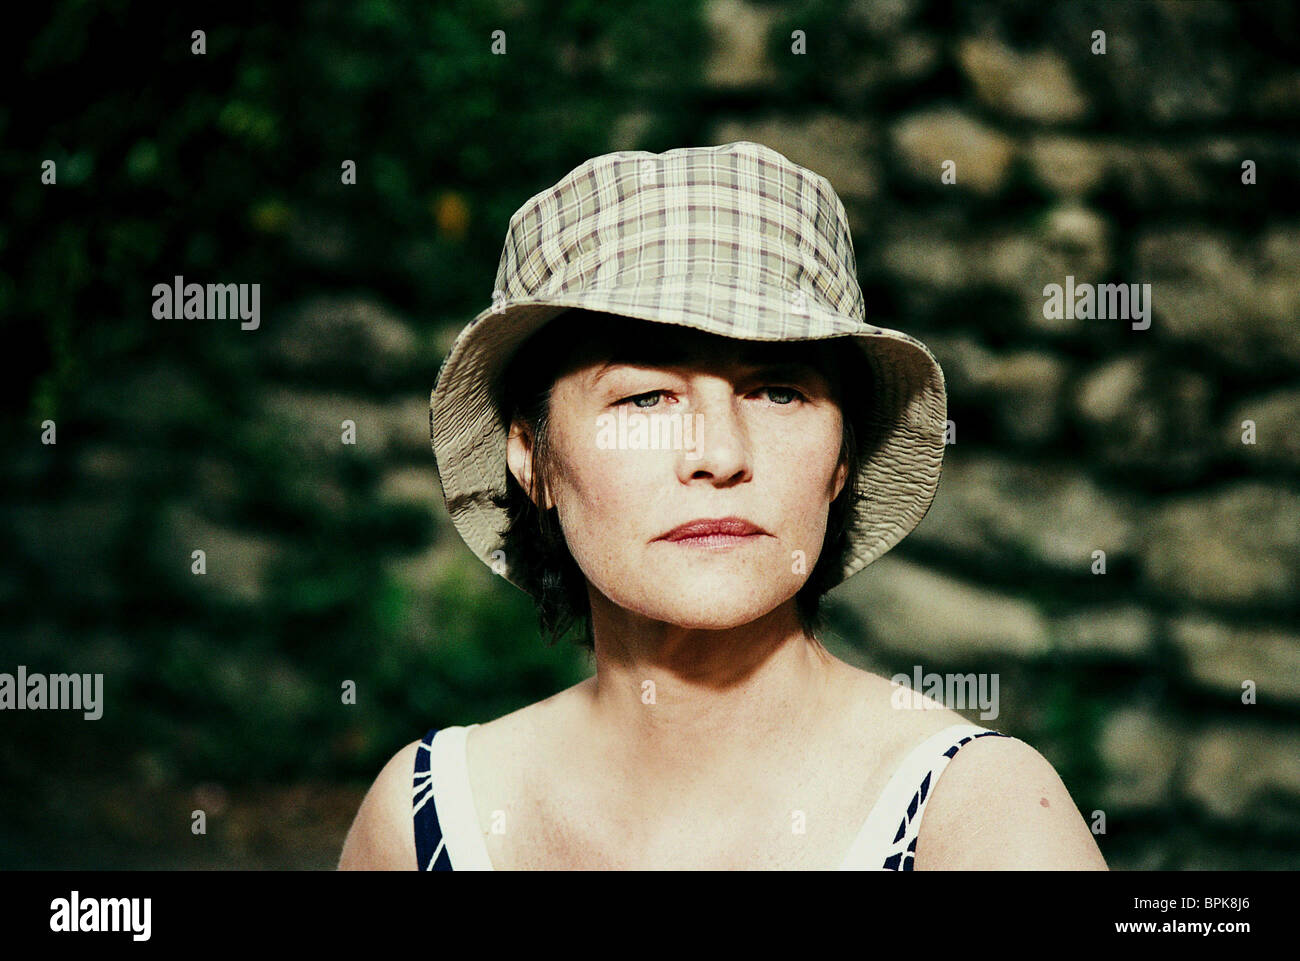 Charlotte rampling swimming pool 2003 stock photo royalty free image 31156670 alamy for Charlotte rampling the swimming pool